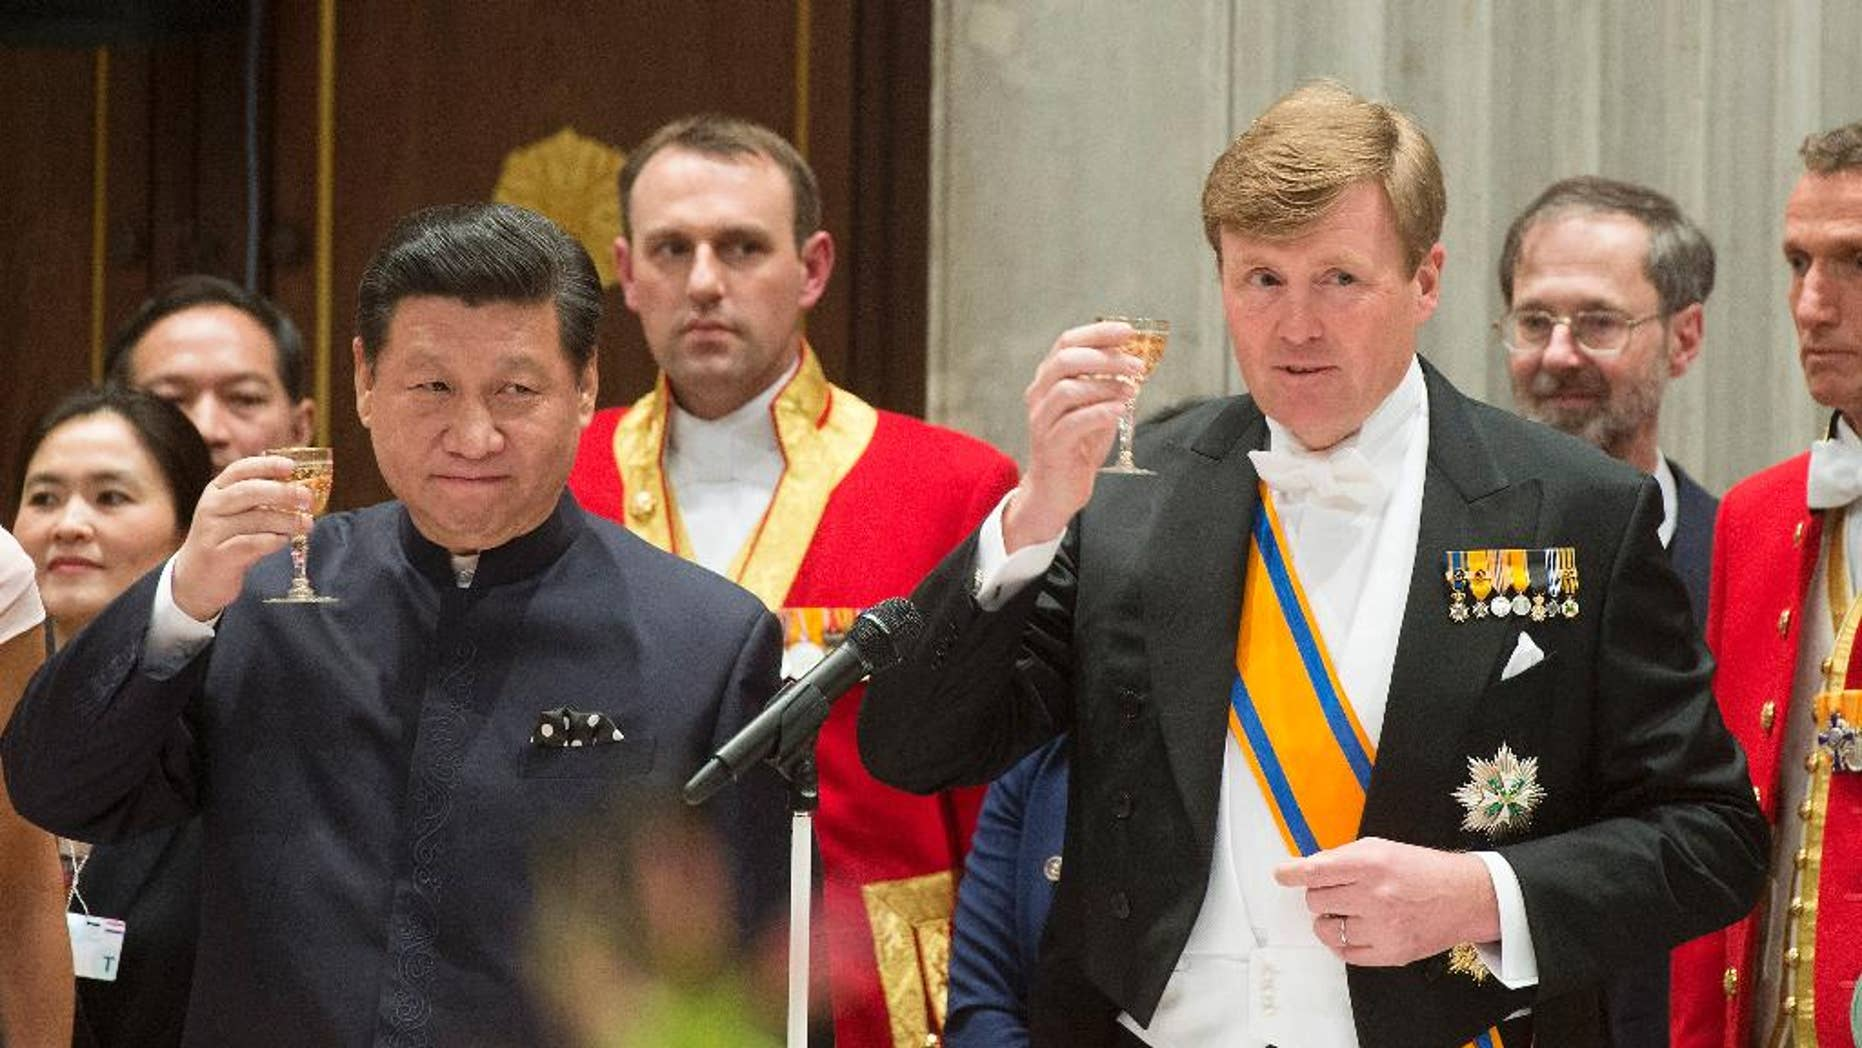 China's President Xi Jinping, left, and Dutch King Willem Alexander, right, propose a toast during the official state banquet at the royal palace in Amsterdam, Netherlands, Saturday March 22, 2014. Xi is on a two-day state visit ahead of the March 24 and 25 Nuclear Security Summit in The Hague. (AP Photo/Toussaint Kluiters, Pool)